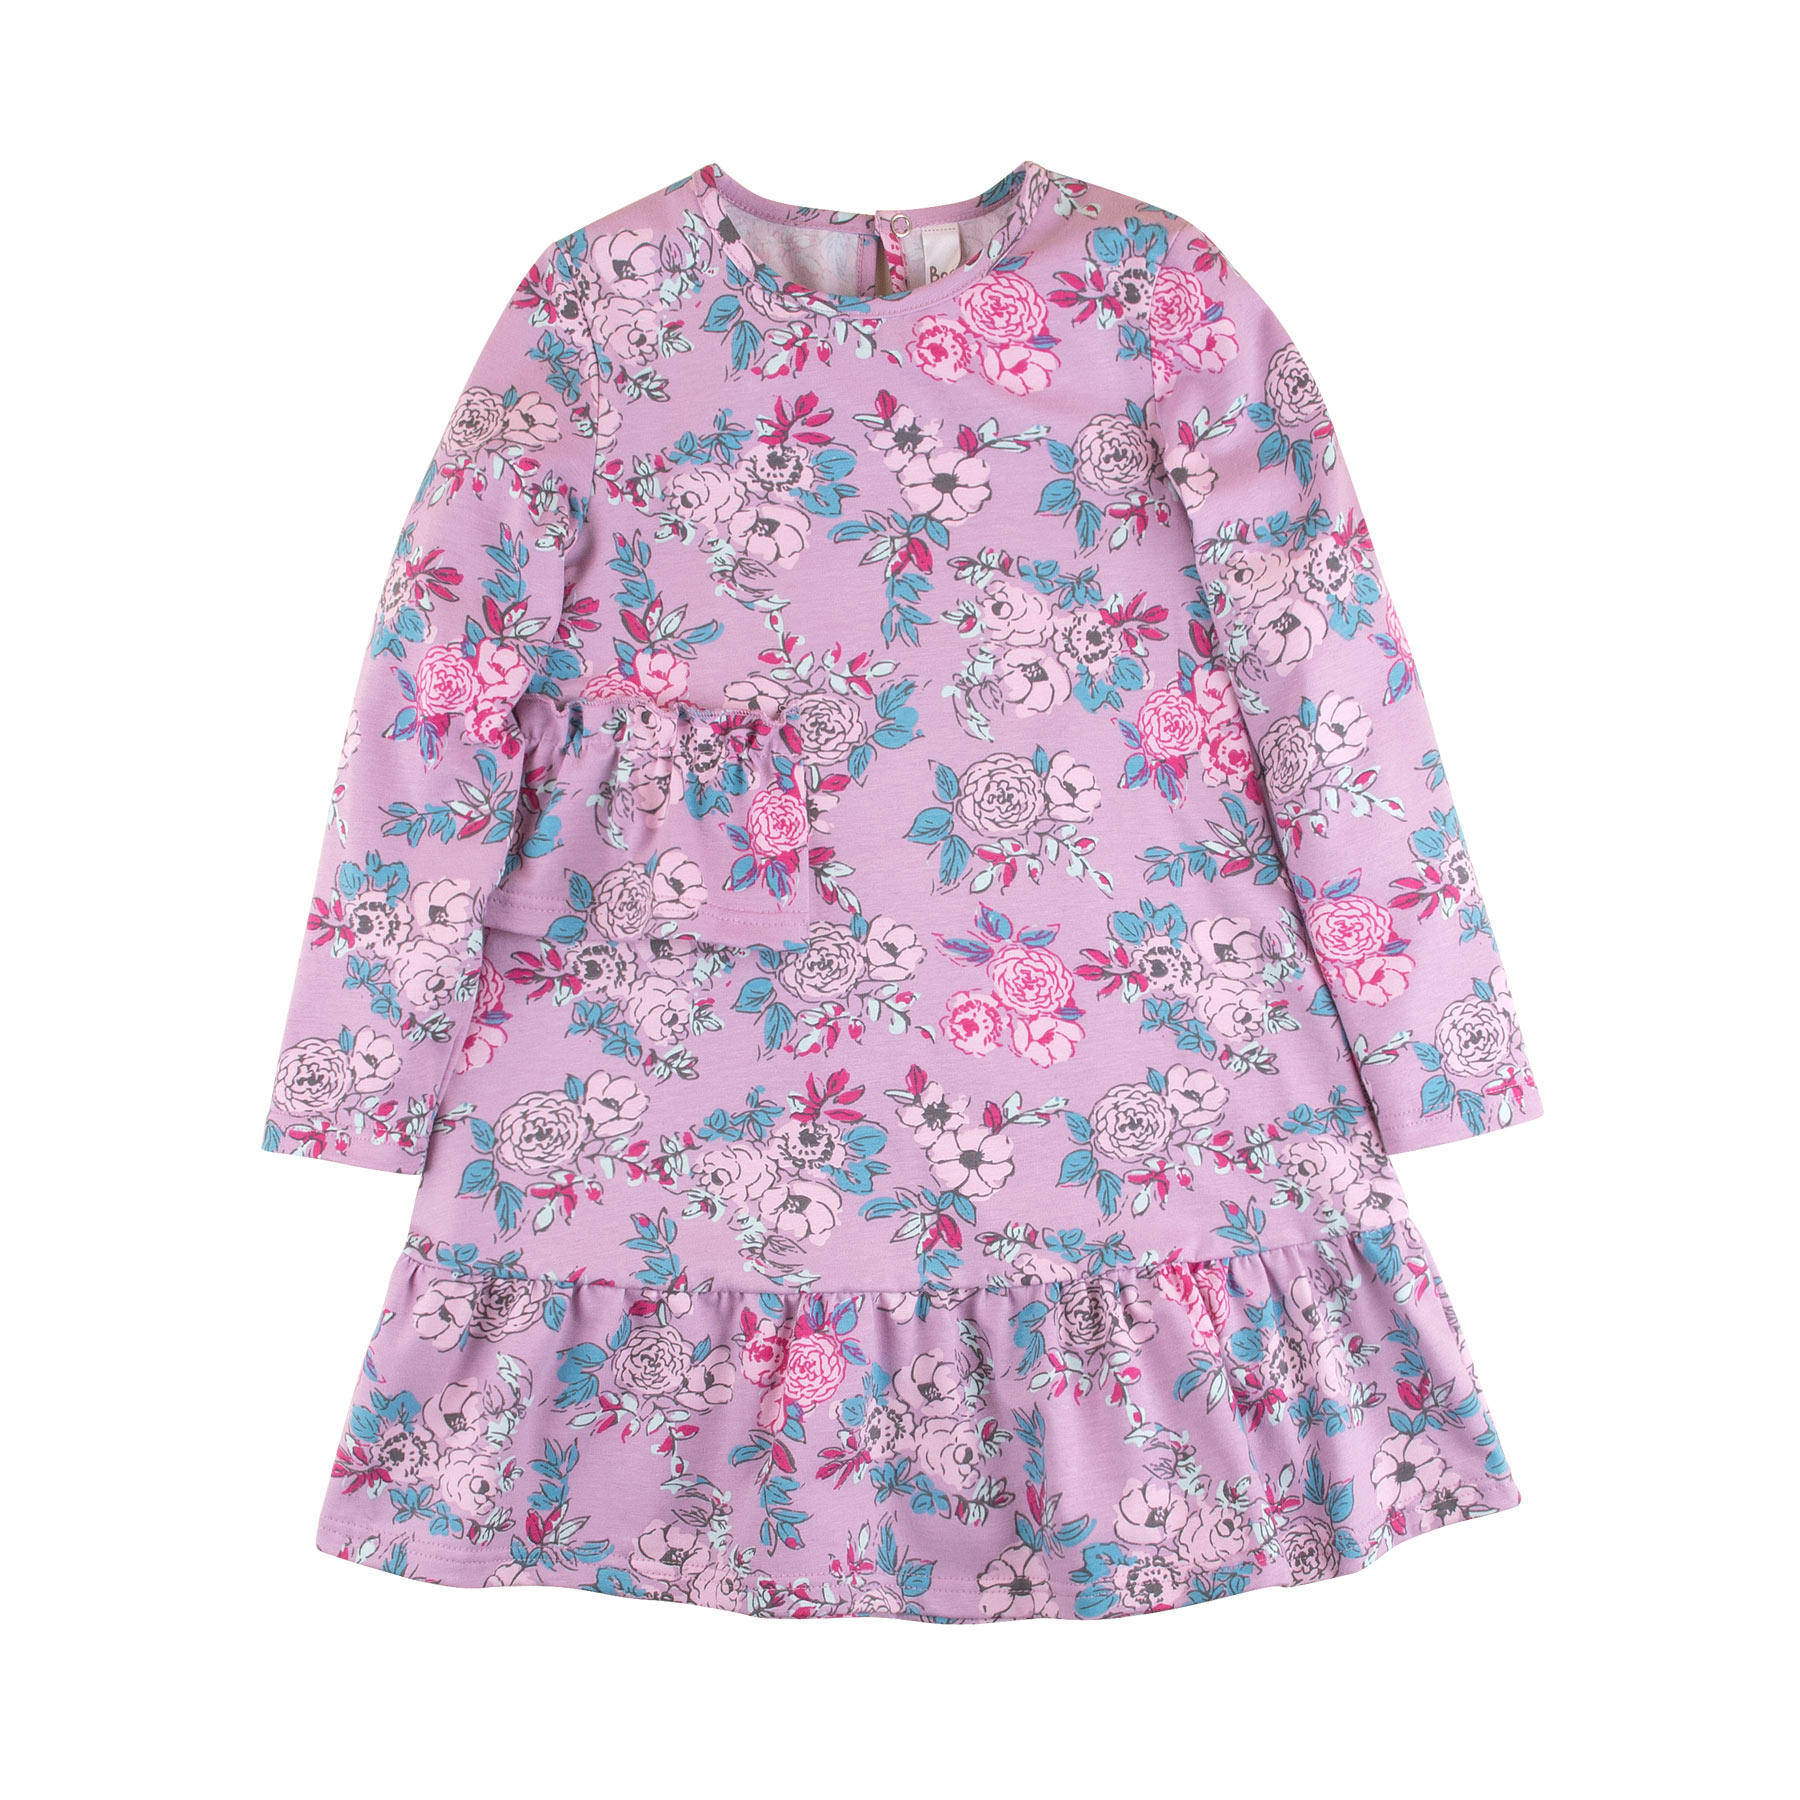 Dresses BOSSA NOVA 149M-187 Maya baby dress for a girl tunic clothes clothing Cotton